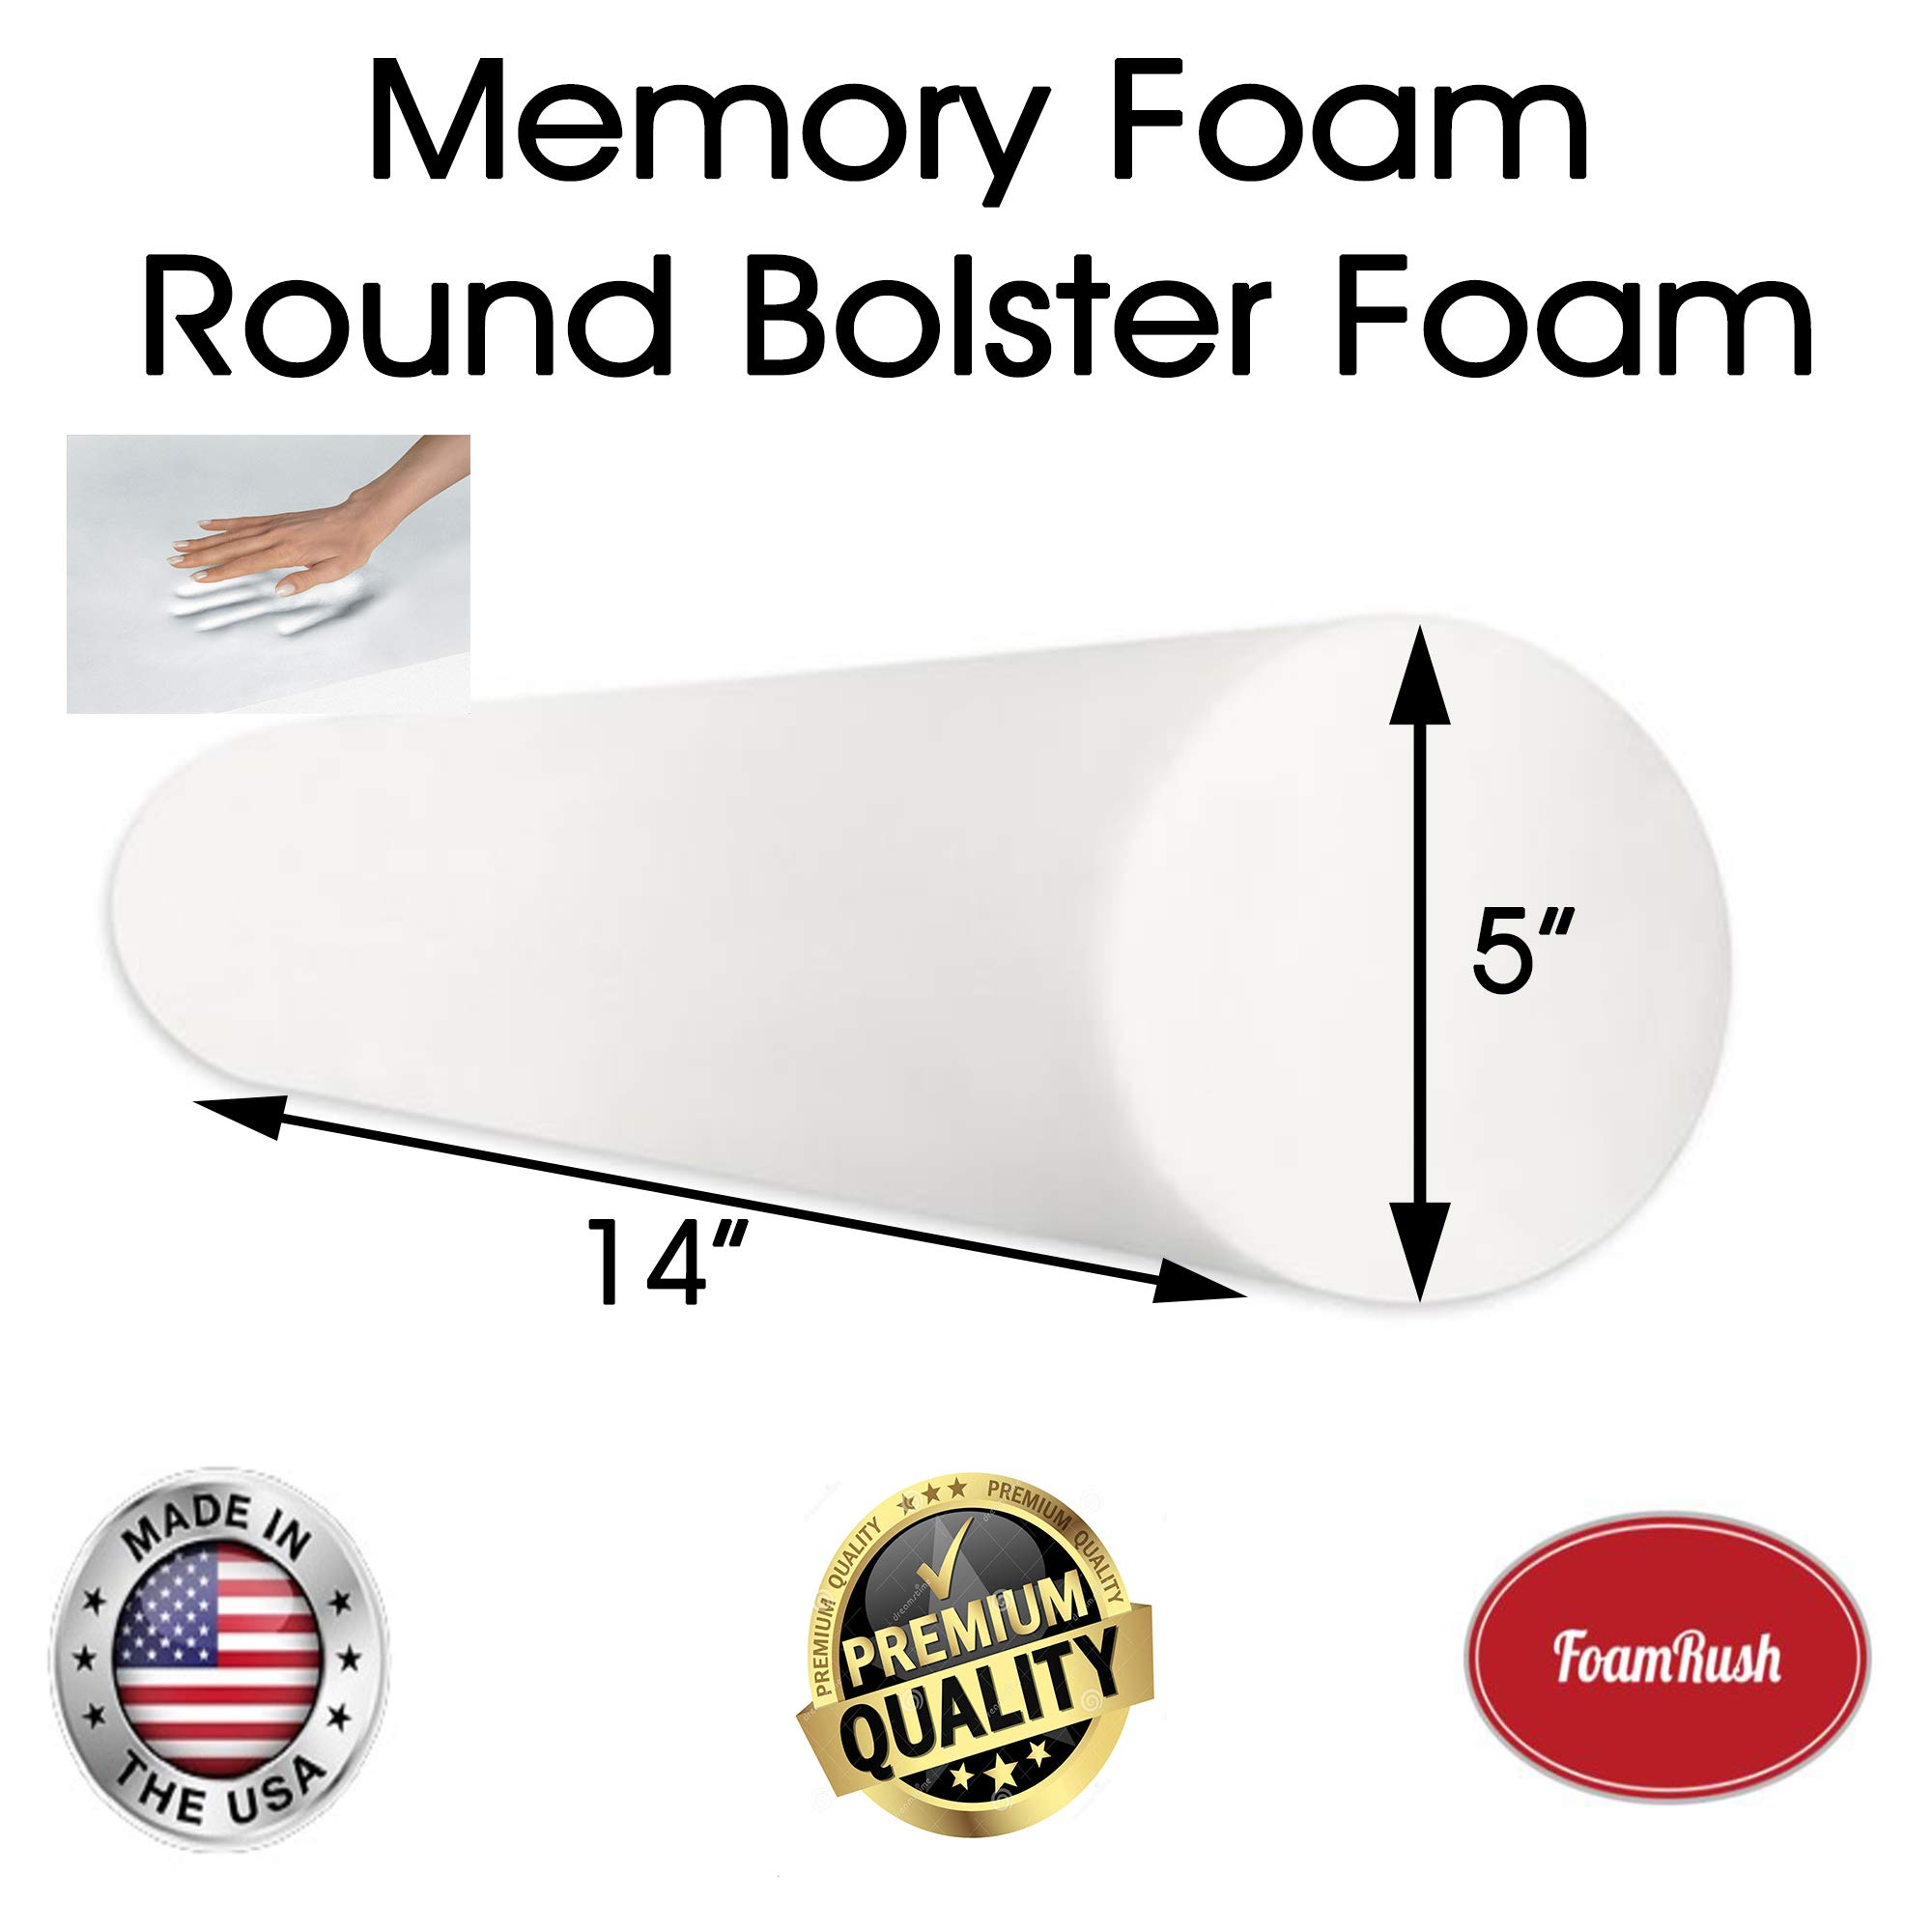 FoamRush 5'' Diameter x 14'' Long Premium Quality Round Bolster Memory Foam Roll Insert Replacement (Ideal for Home Accent Décor Positioning and General Fitness) Made in USA